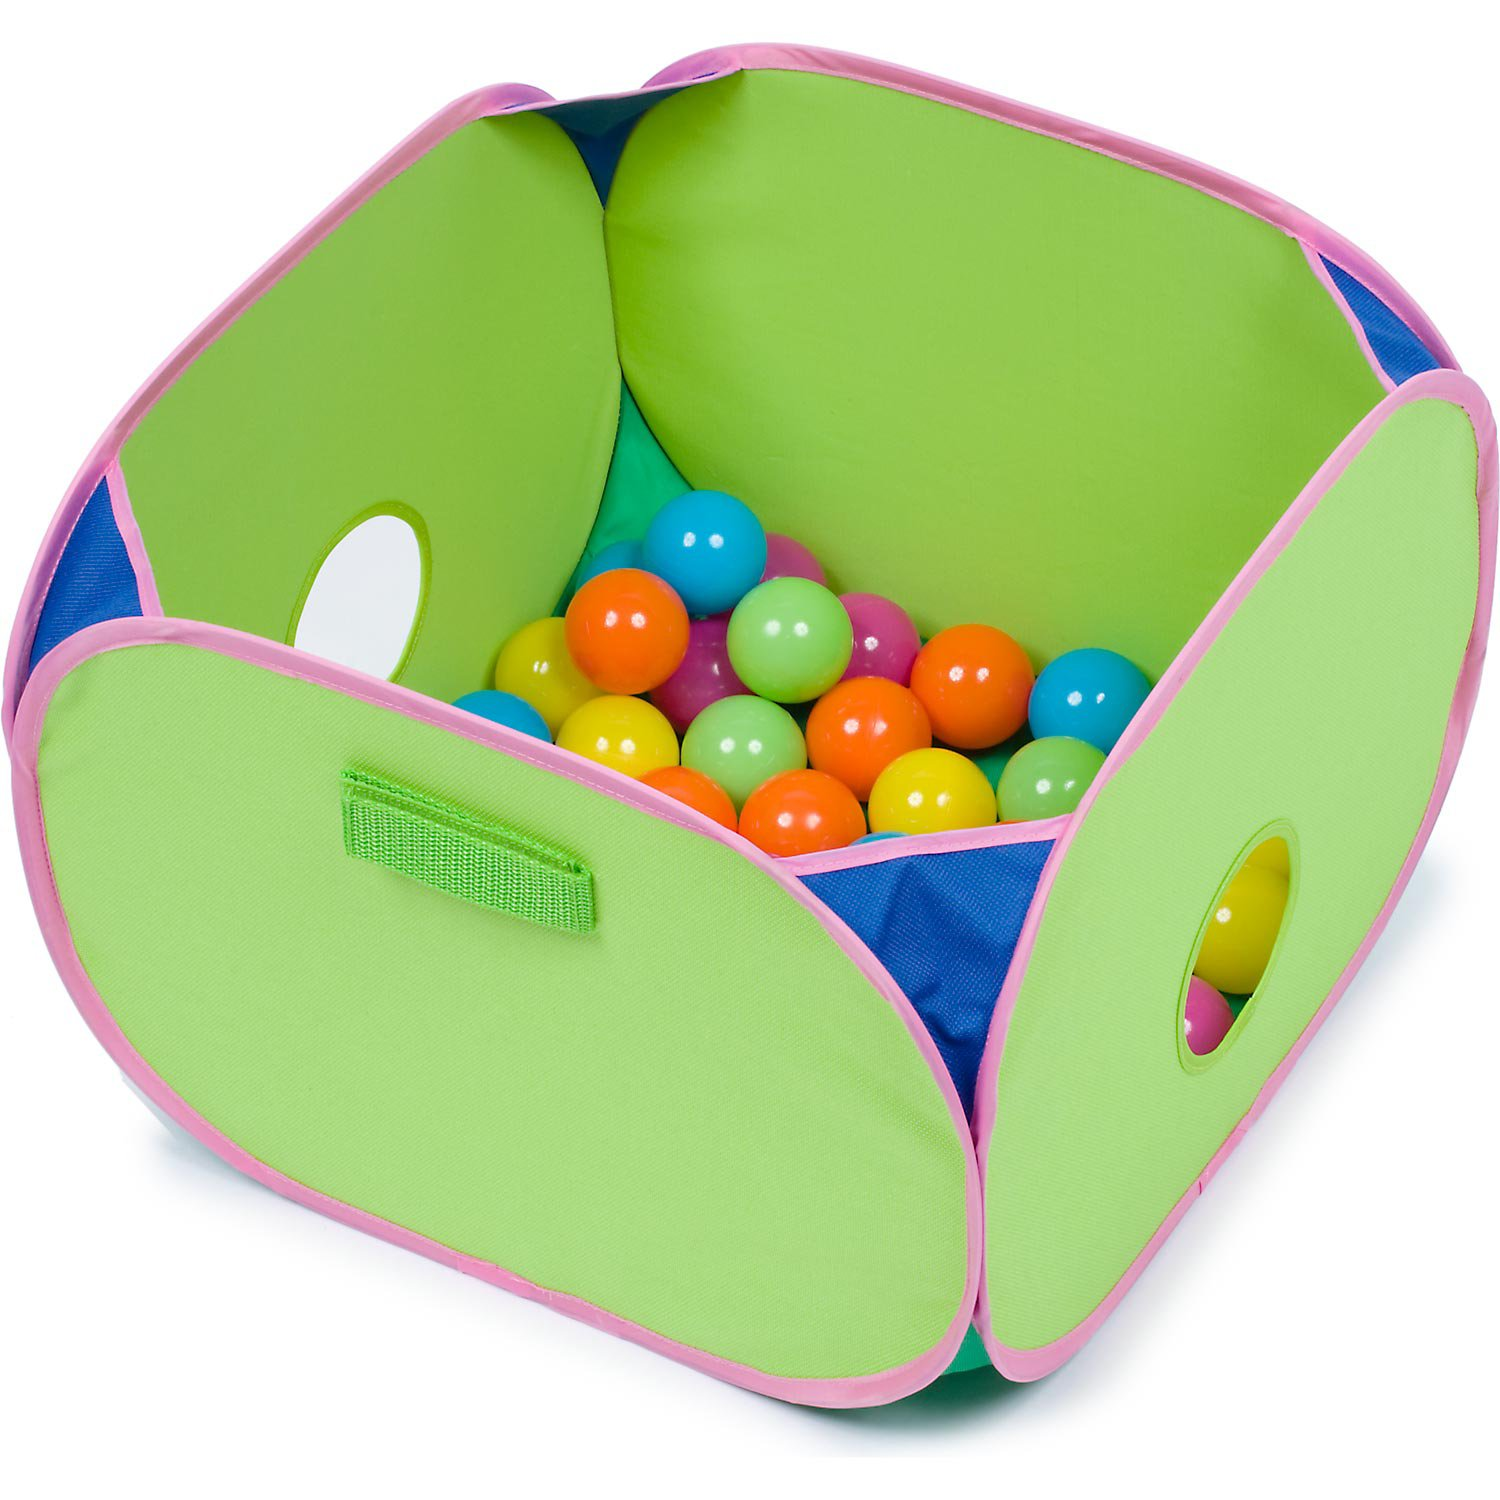 Toys For Balls : Marshall pet products pop n play ferret ball pit toy petco